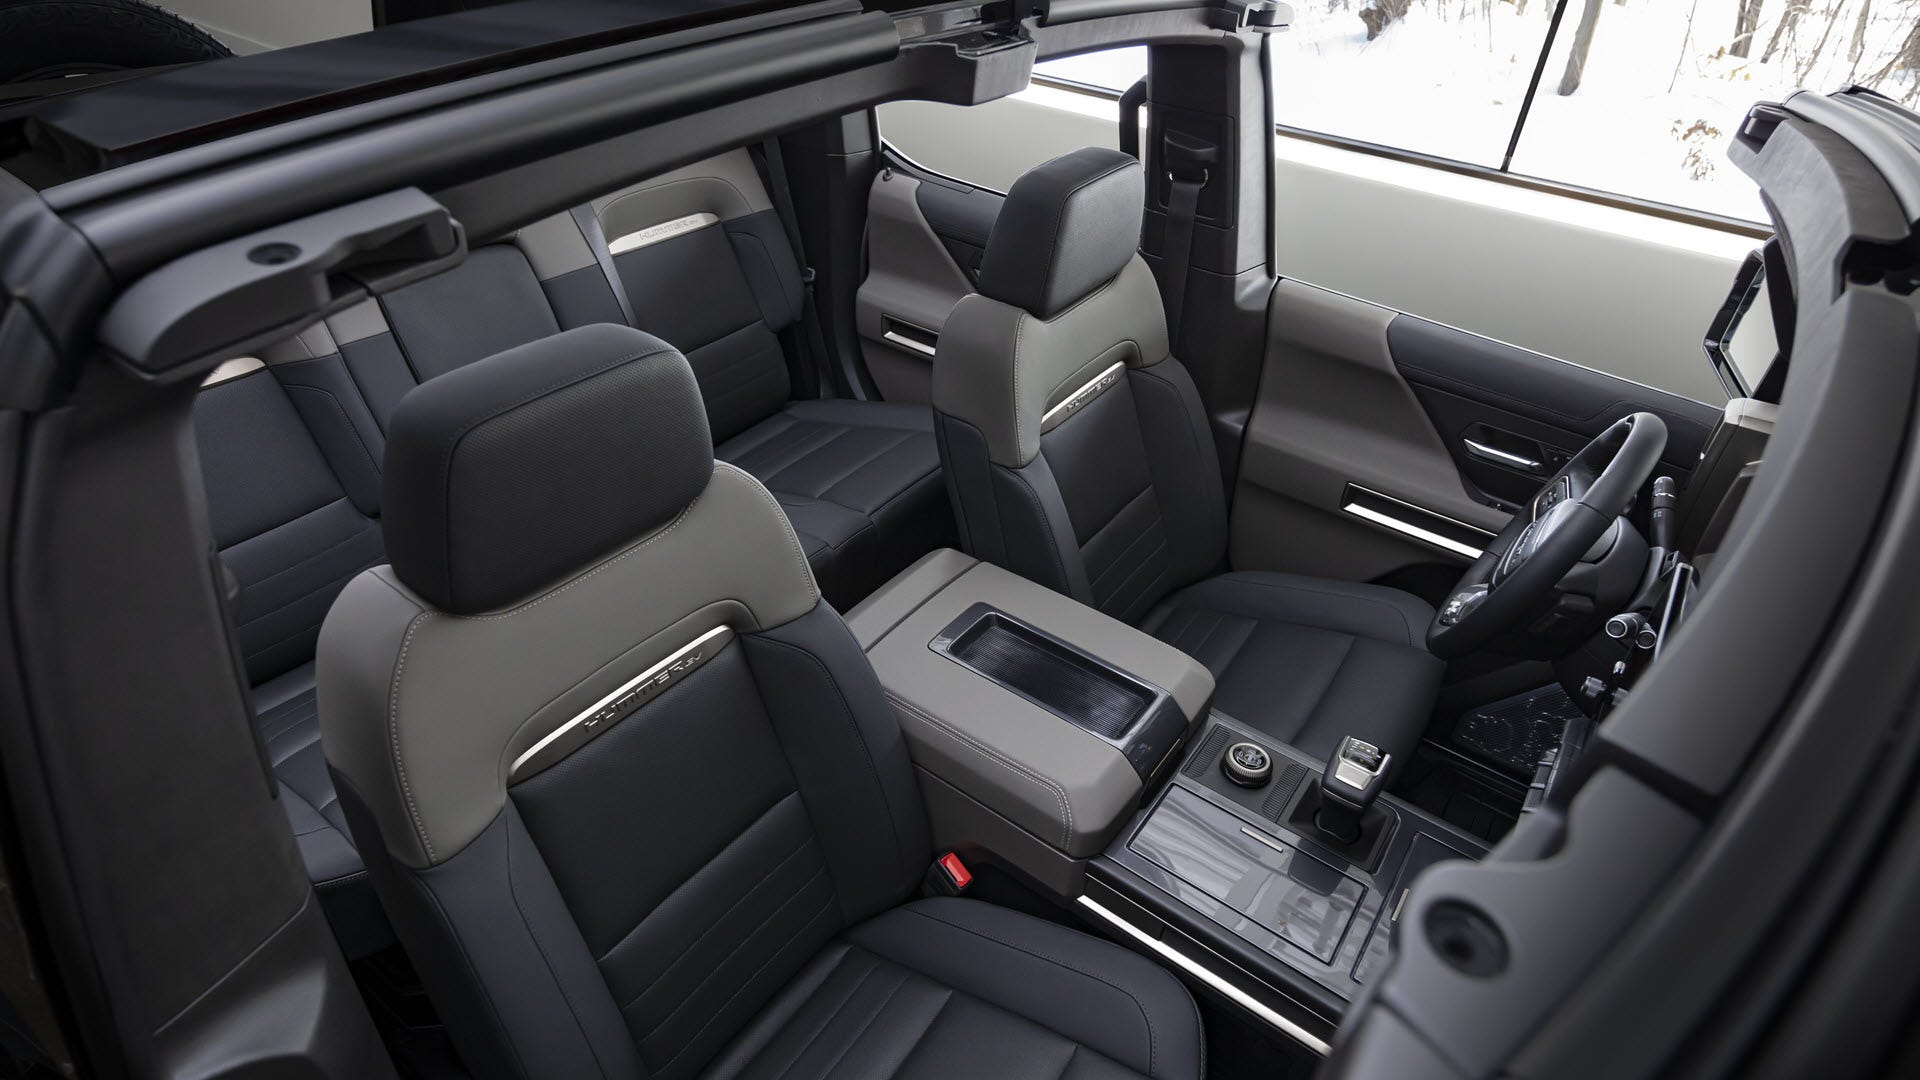 A spacious Hummer interior with fold-out seats